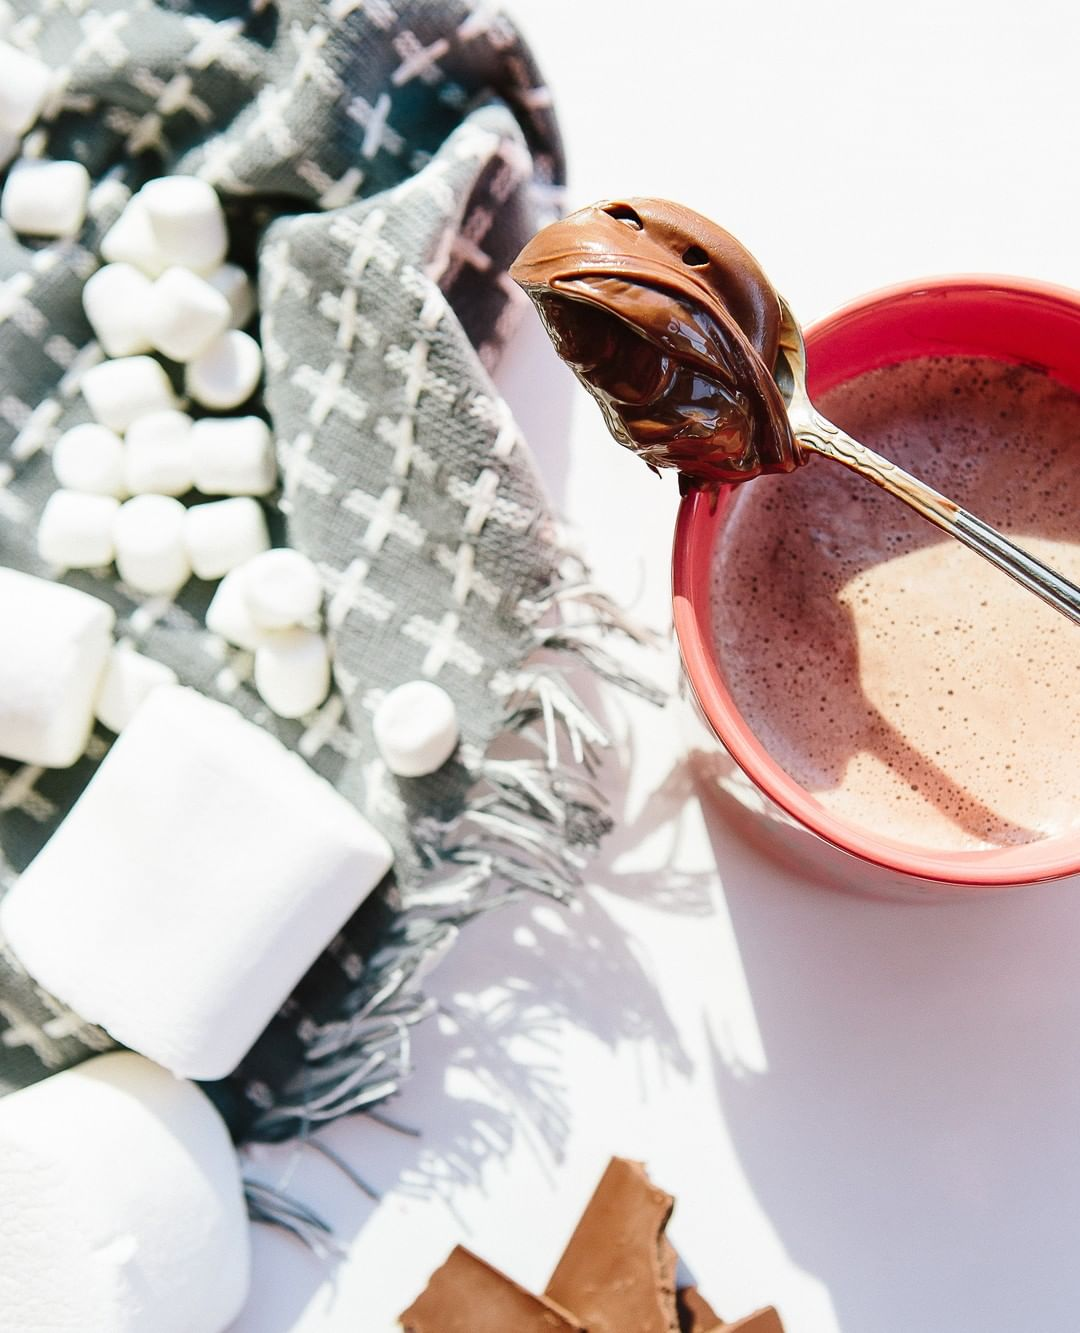 Hot chocolate with holiday toppings and marshmallows